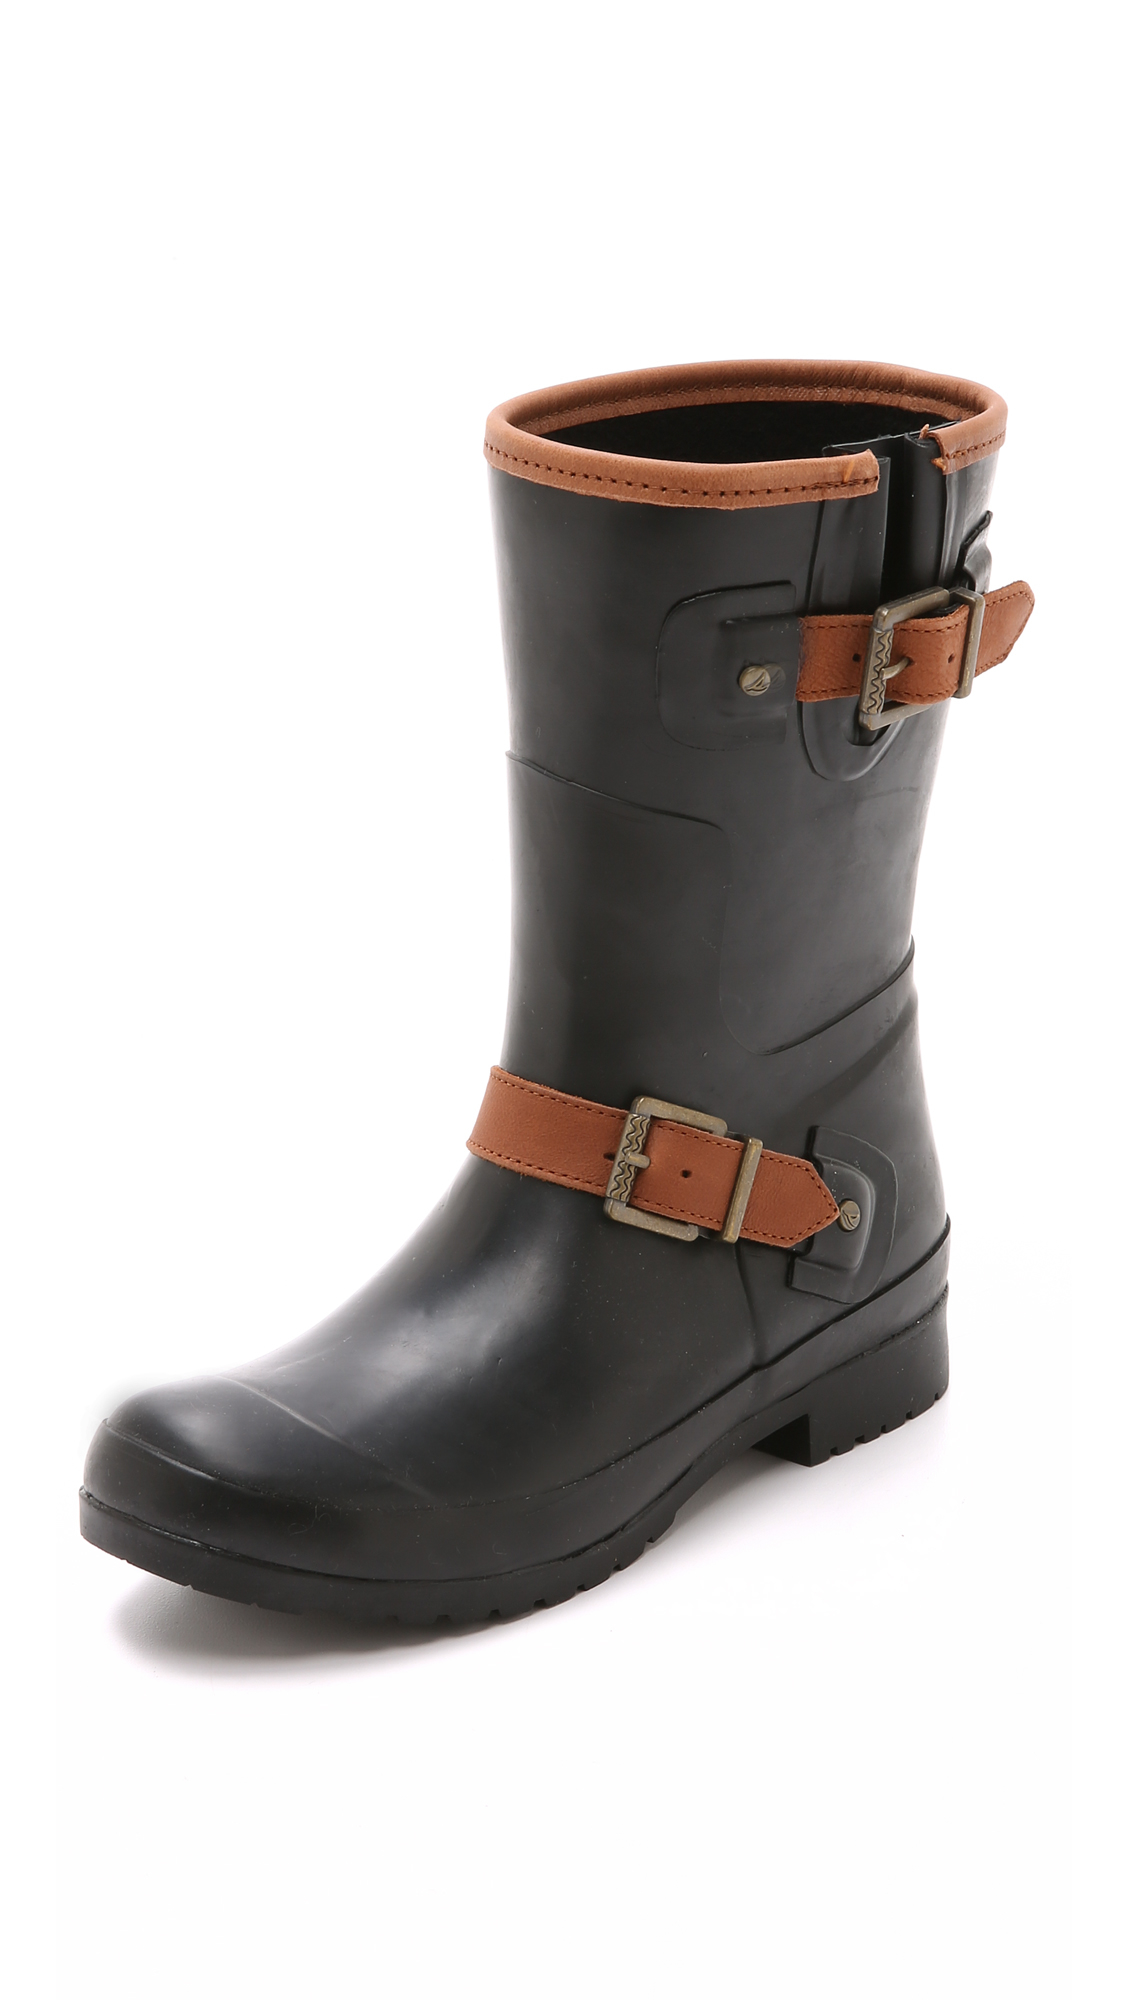 Sperry top-sider Walker Fog Rain Boots - Black in Black | Lyst